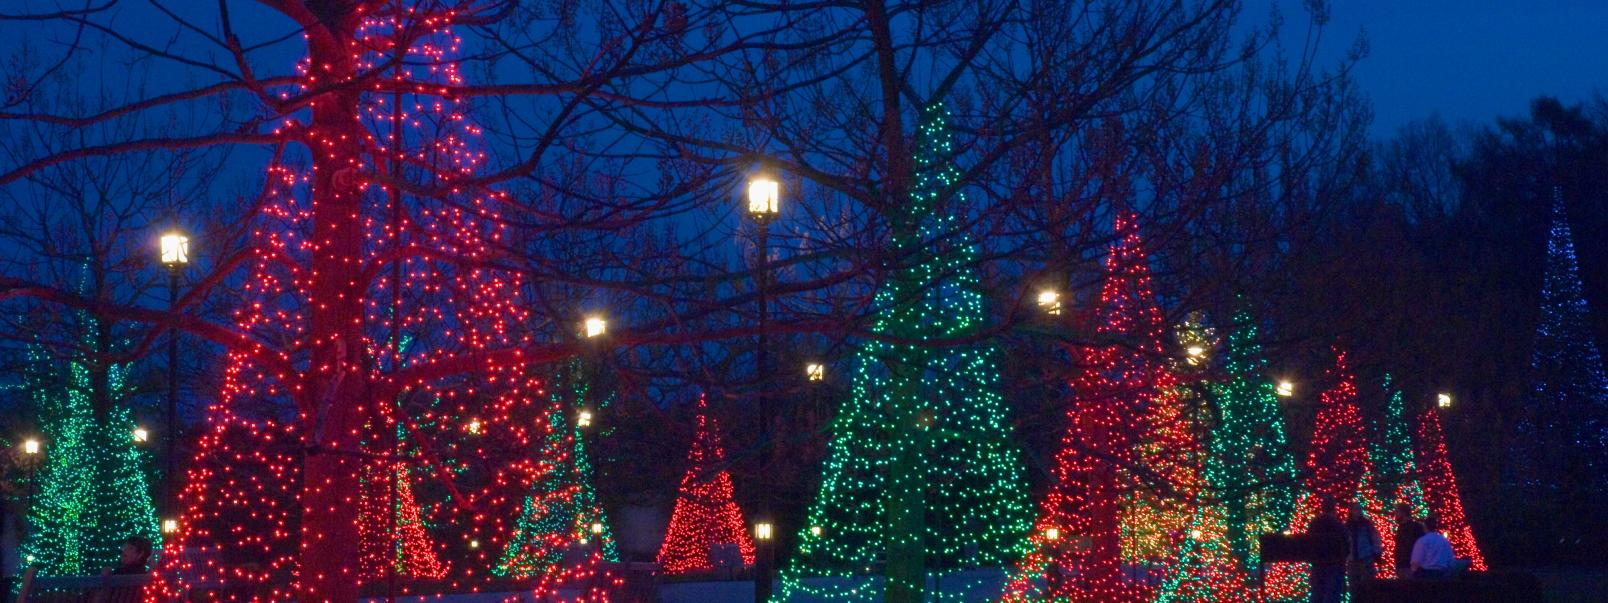 Longwood Gardens Christmas.Holiday Lights Events At Longwood Gardens Brandywine Valley